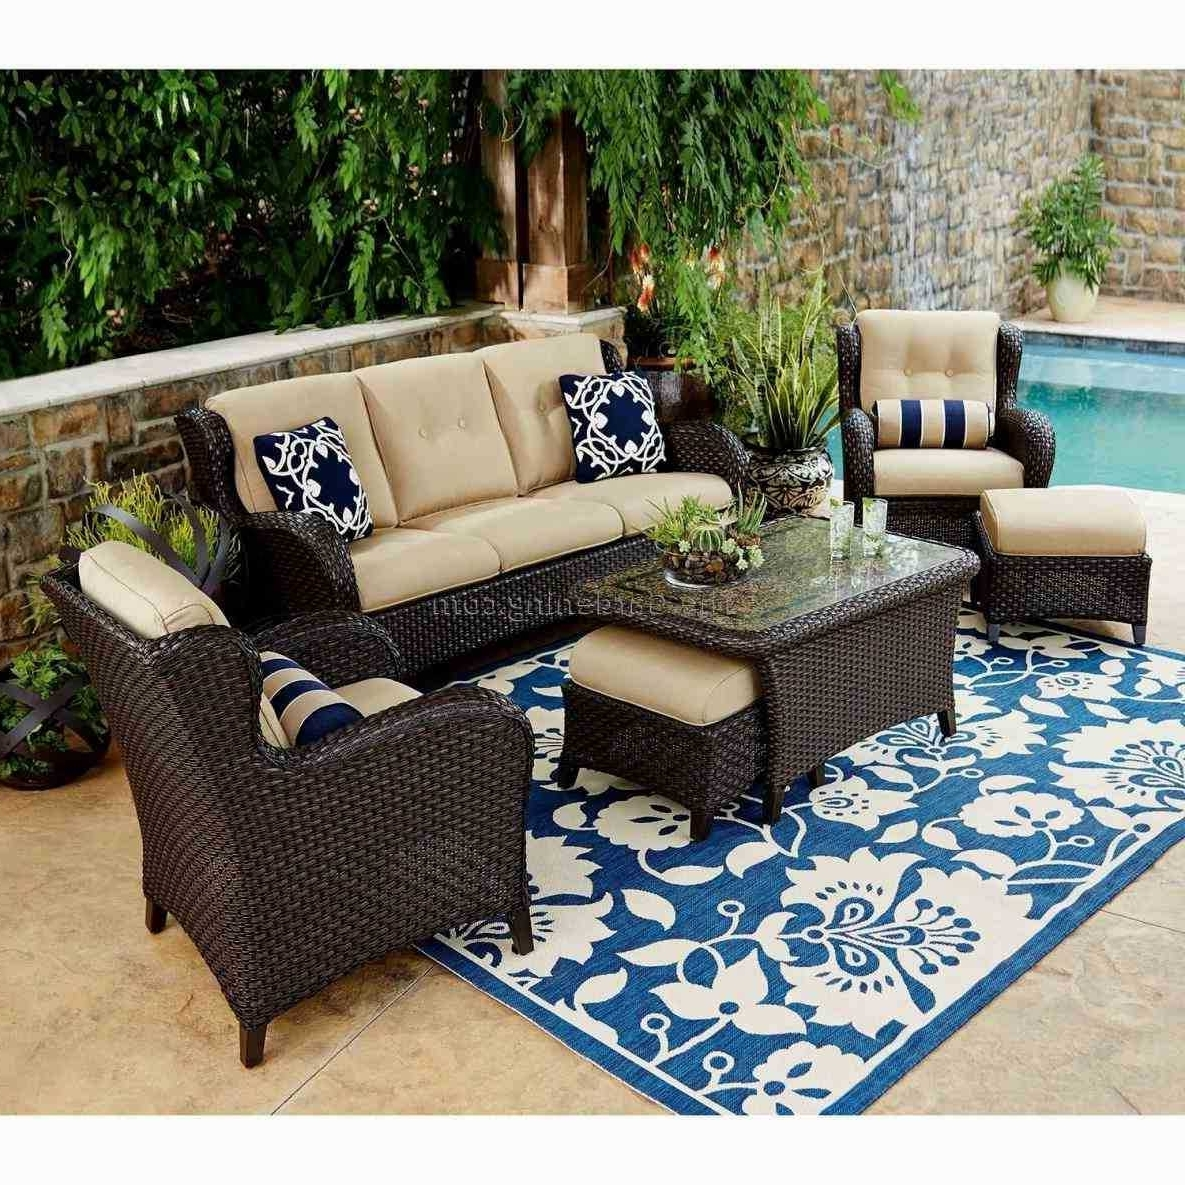 Patio Conversation Sets Under 200 Pertaining To Most Up To Date Patio Furniture Under $200 – Patio Ideas (View 14 of 15)